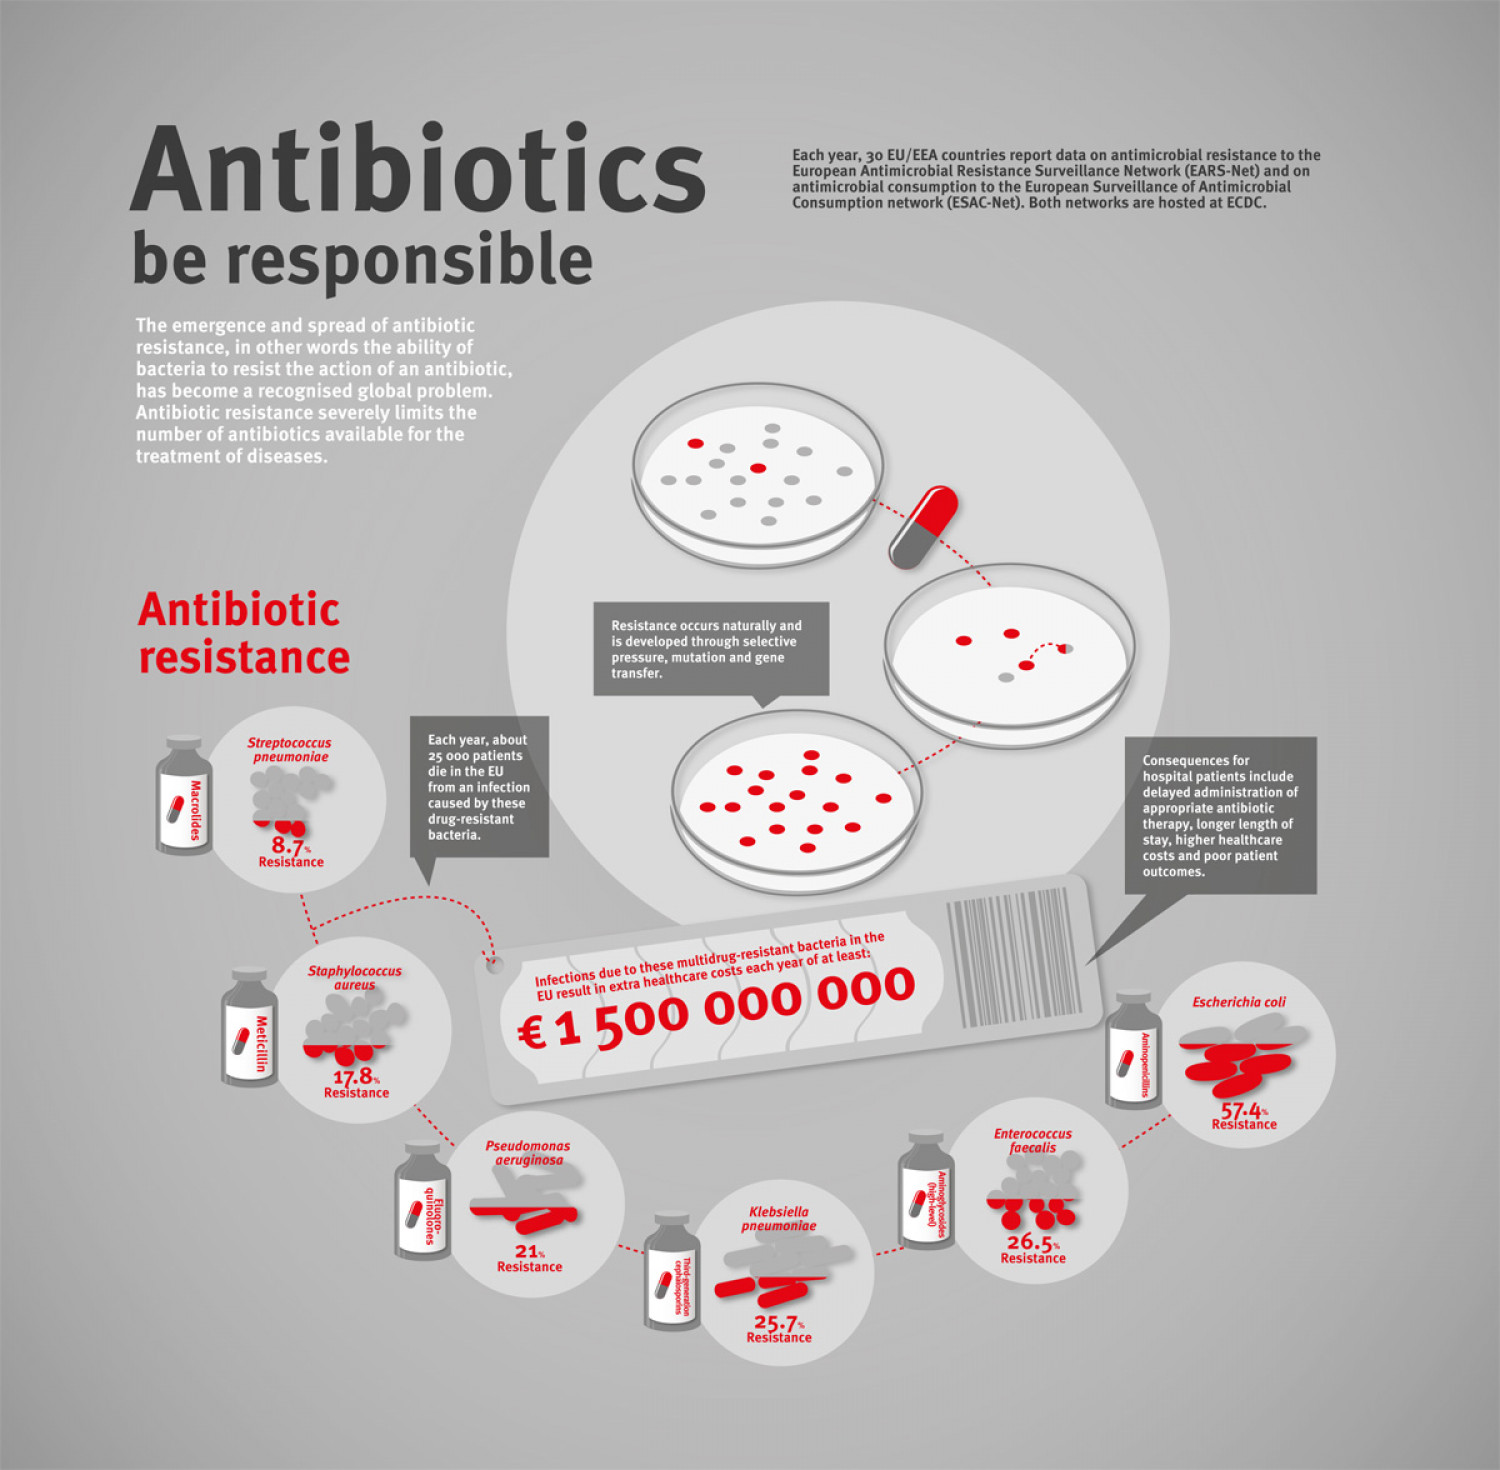 Antibiotic resistance Infographic